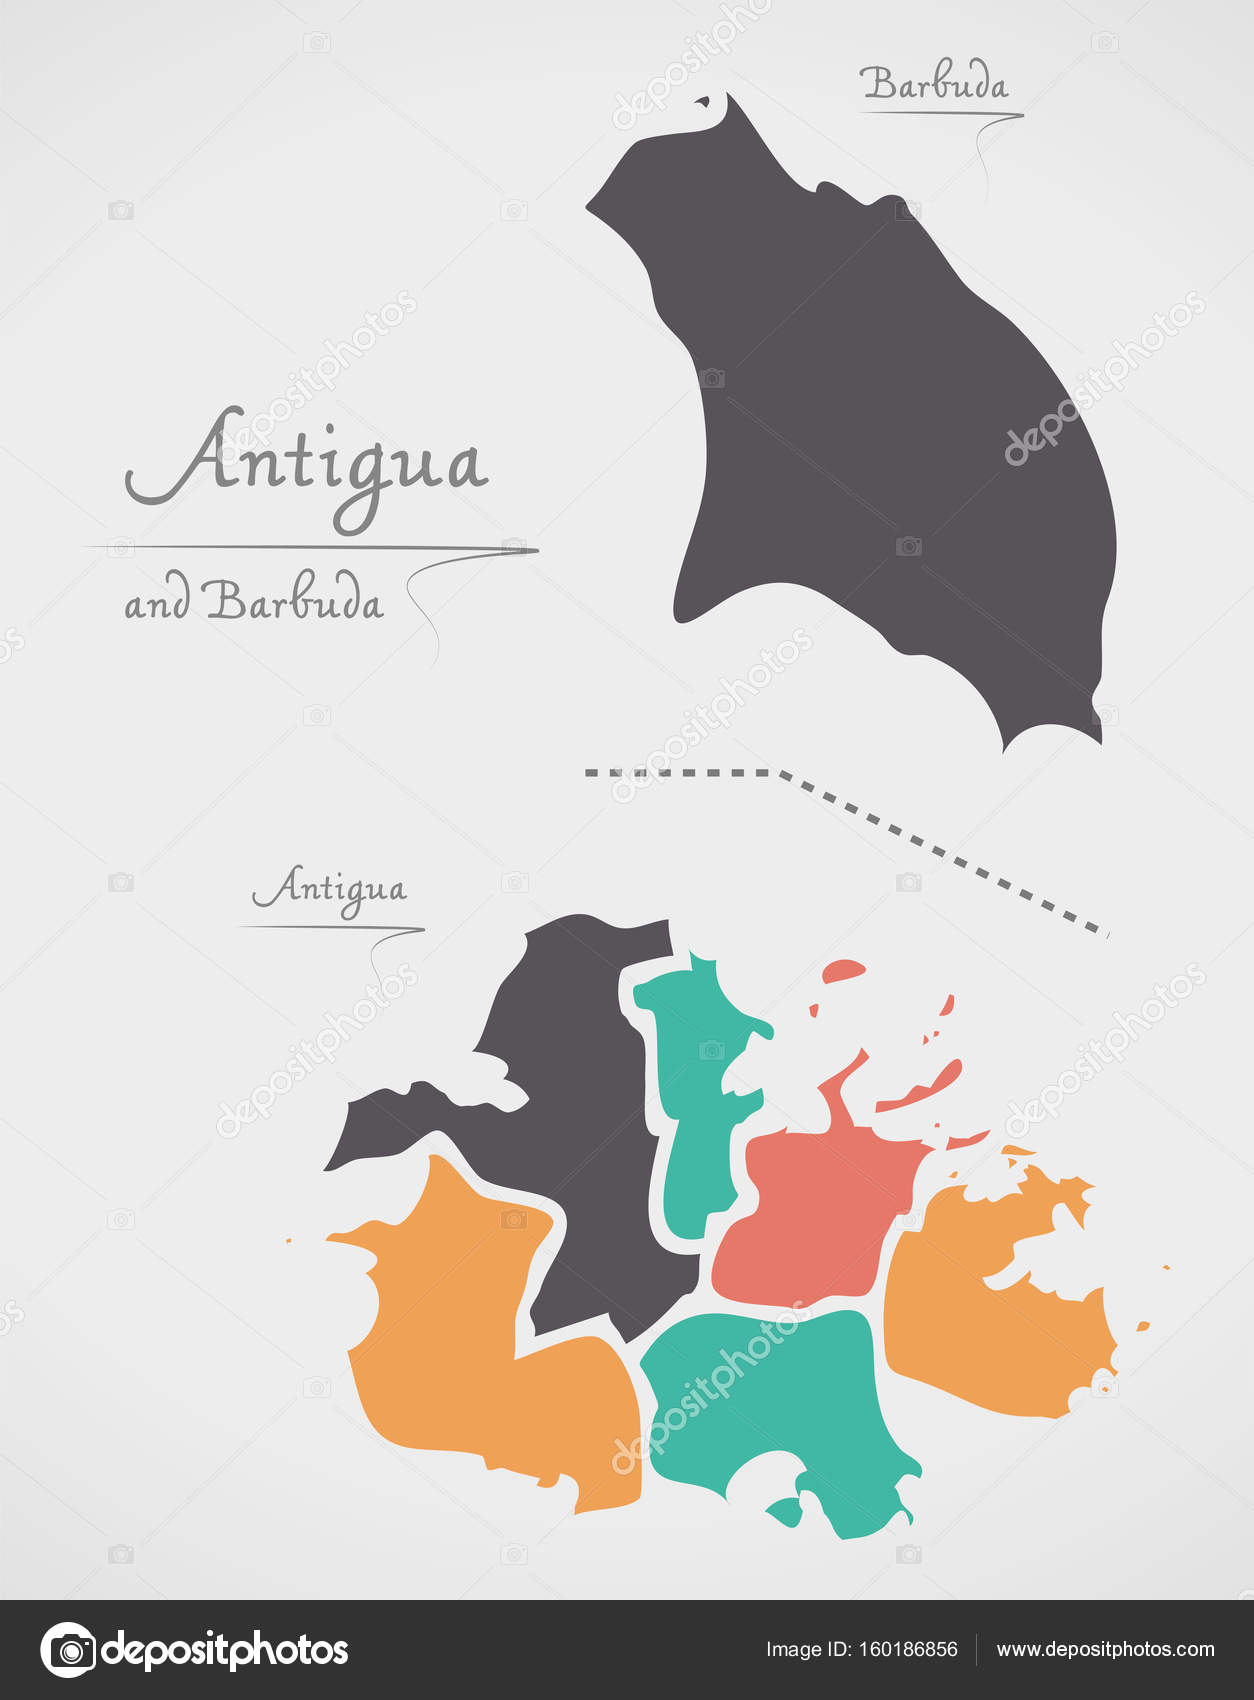 Antigua and Barbuda Map with states and modern round shapes Stock